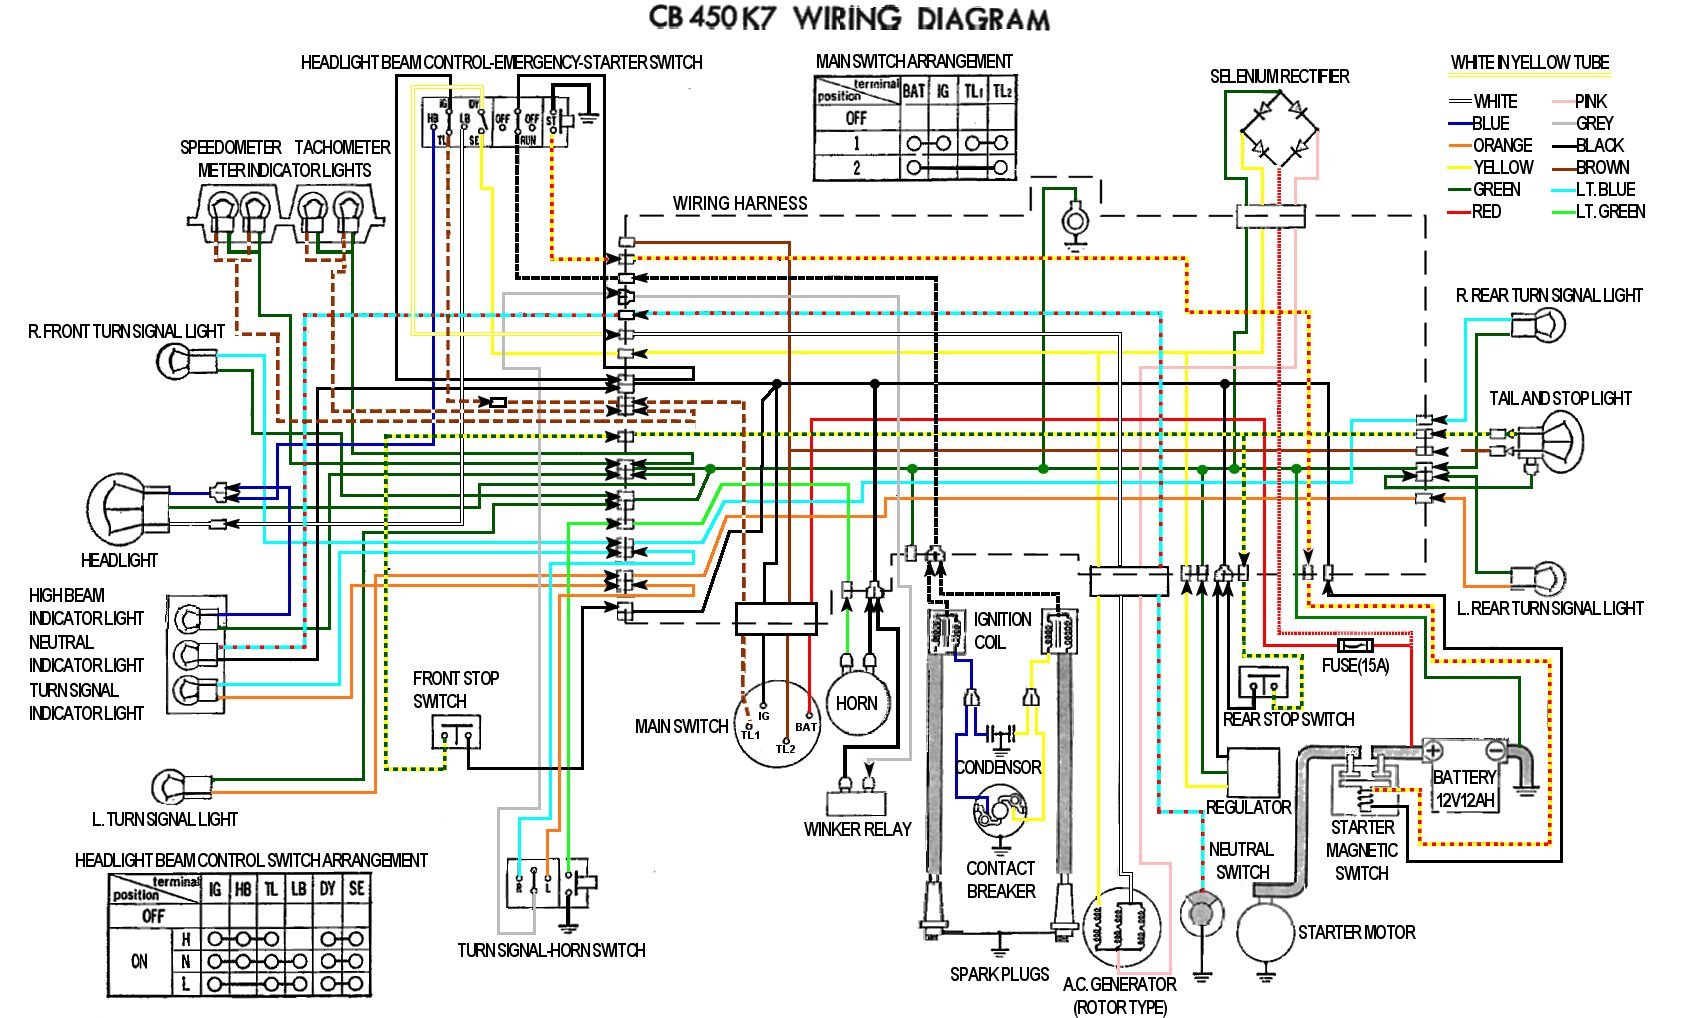 Cb 200 Wiring Diagram Opinions About 1993 Buick Park Avenue Radio Cb450 Color Now Corrected Cbx